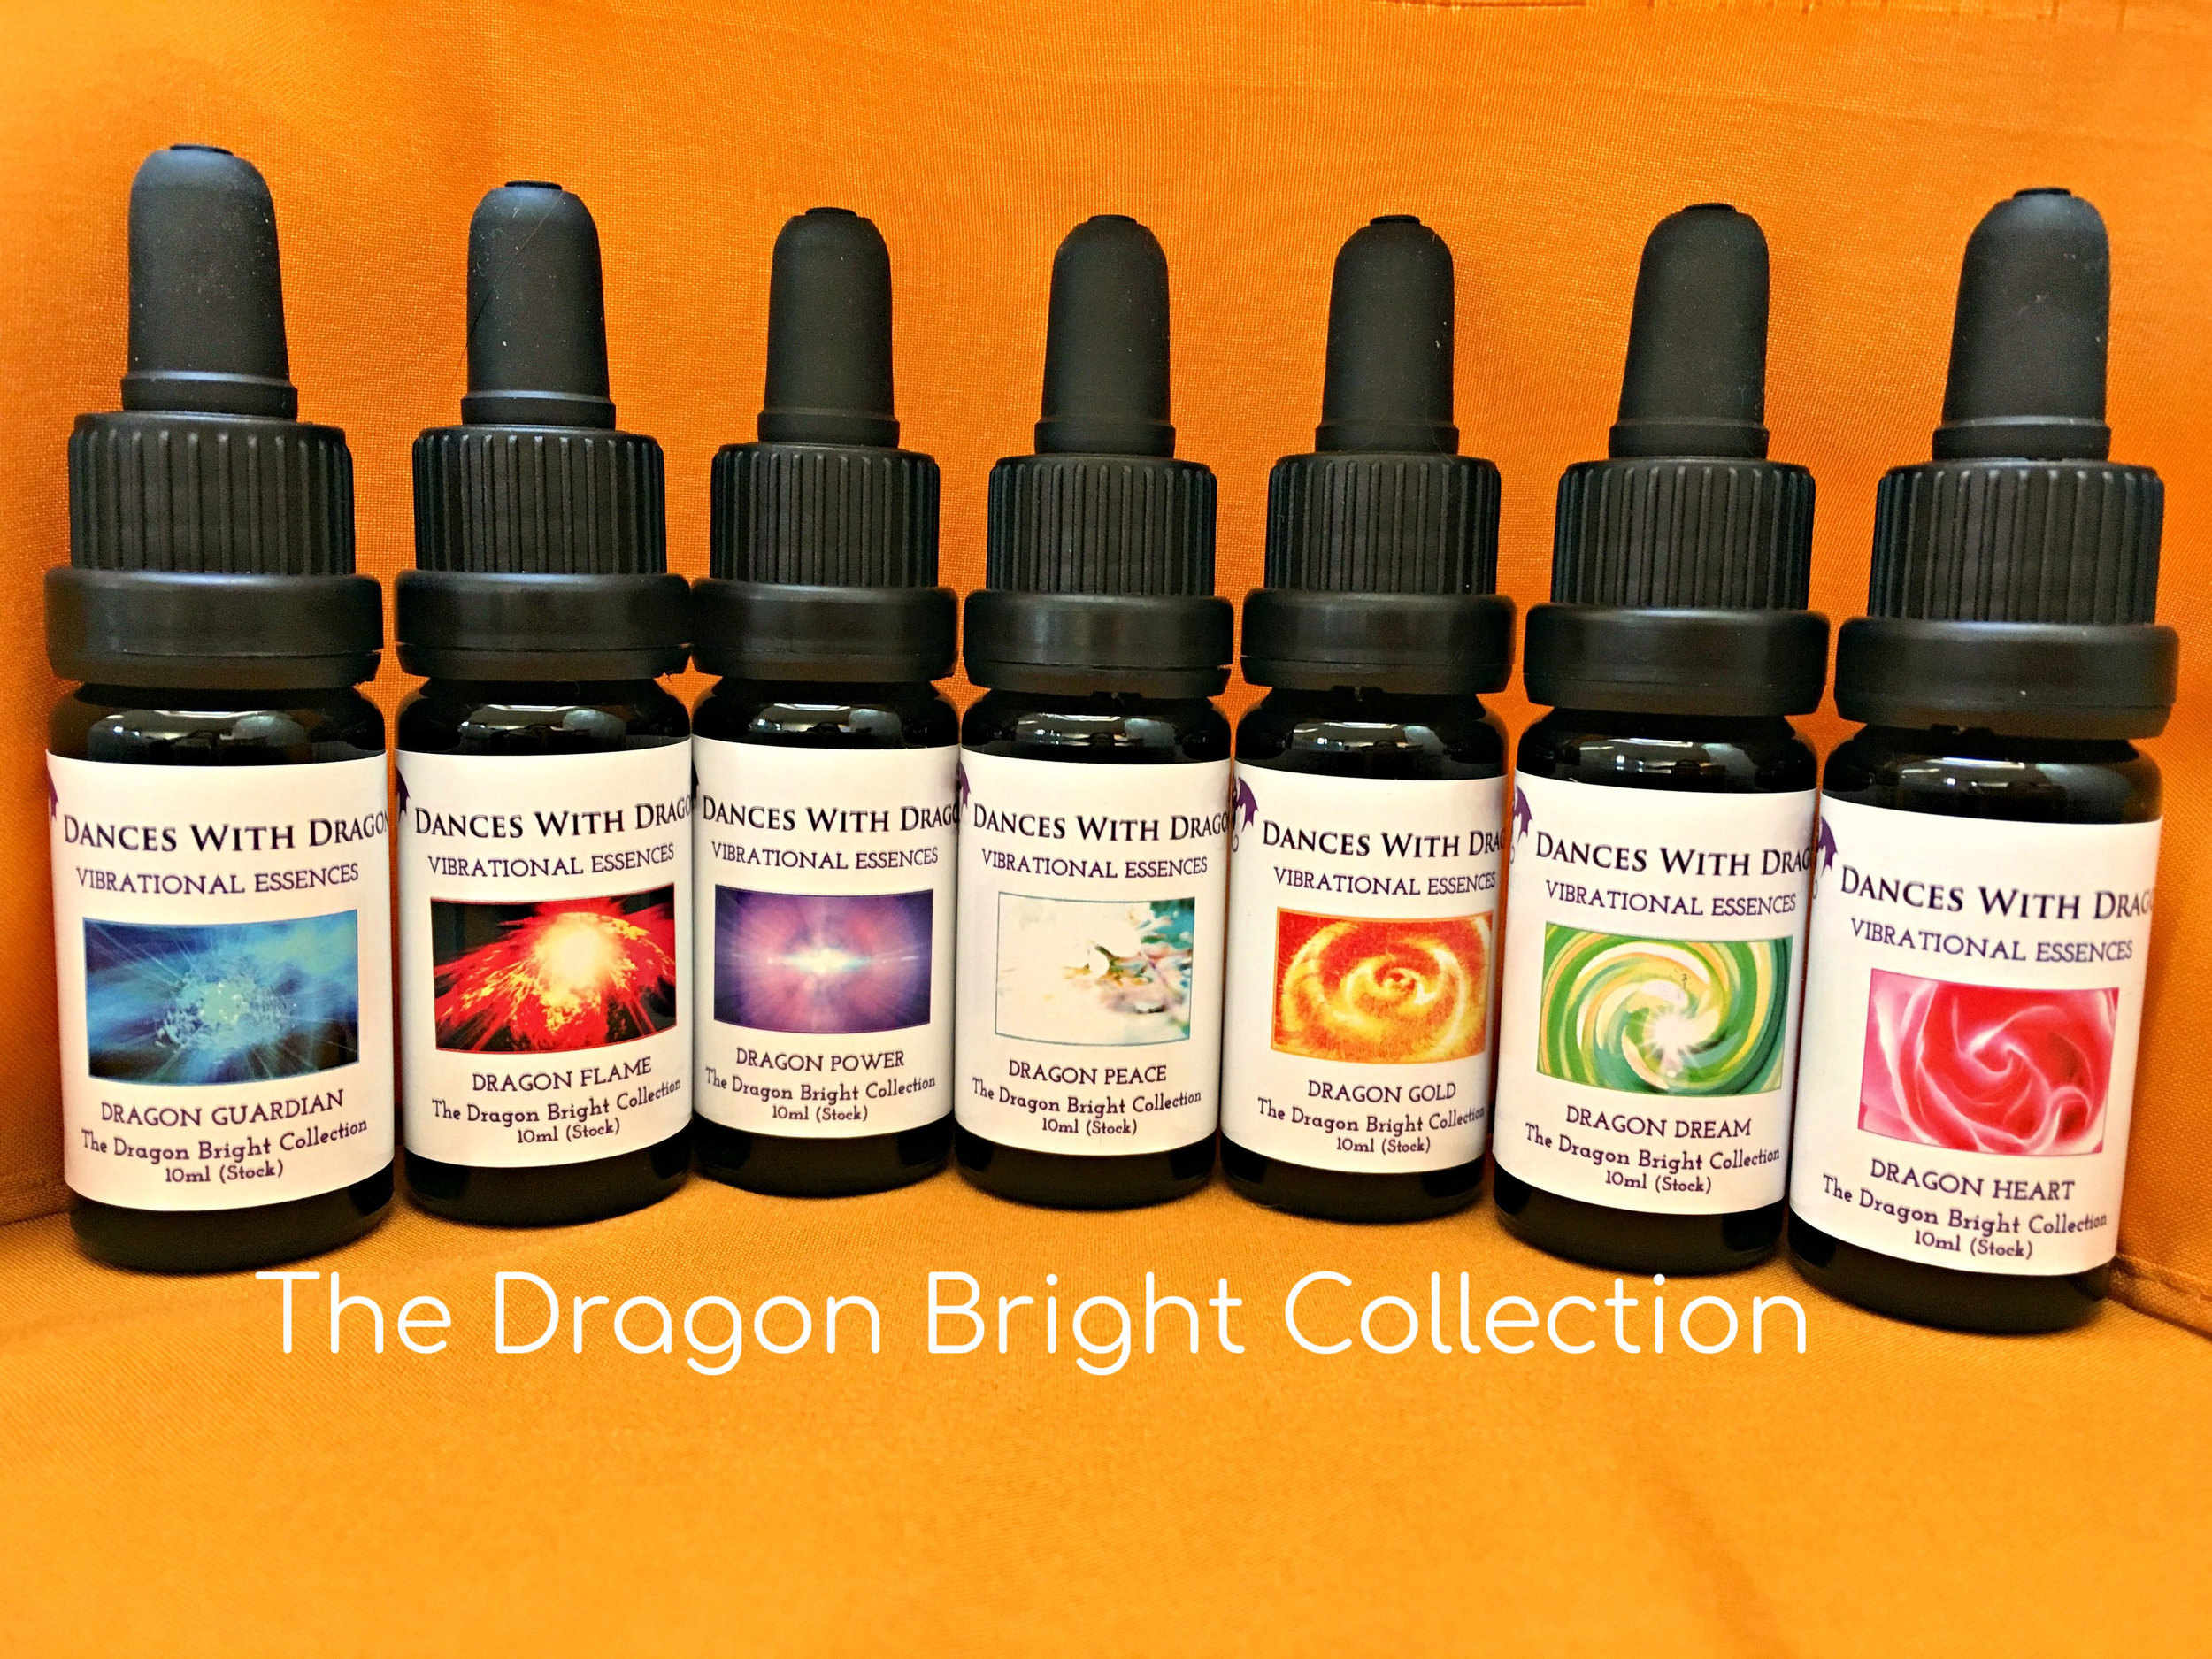 Dragon Bright Collection1.jpg